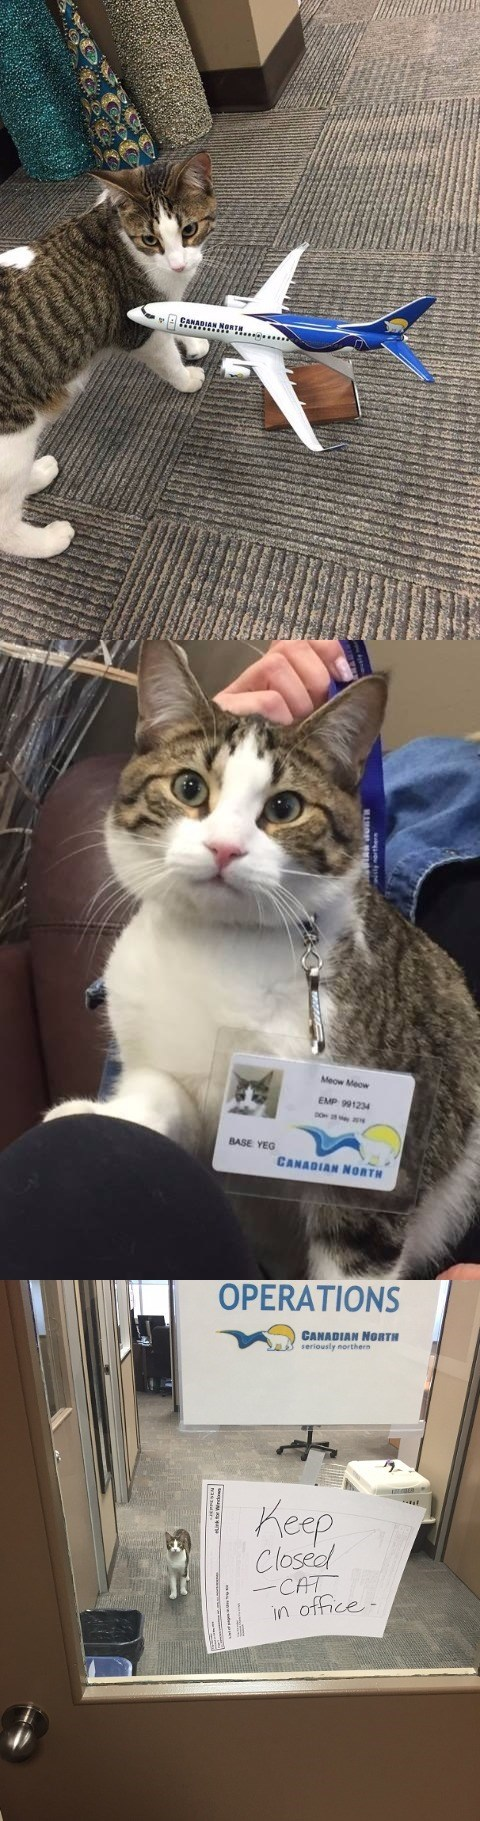 An Awesome Airline Looked After a Cat When Her Owner Went Into Labor